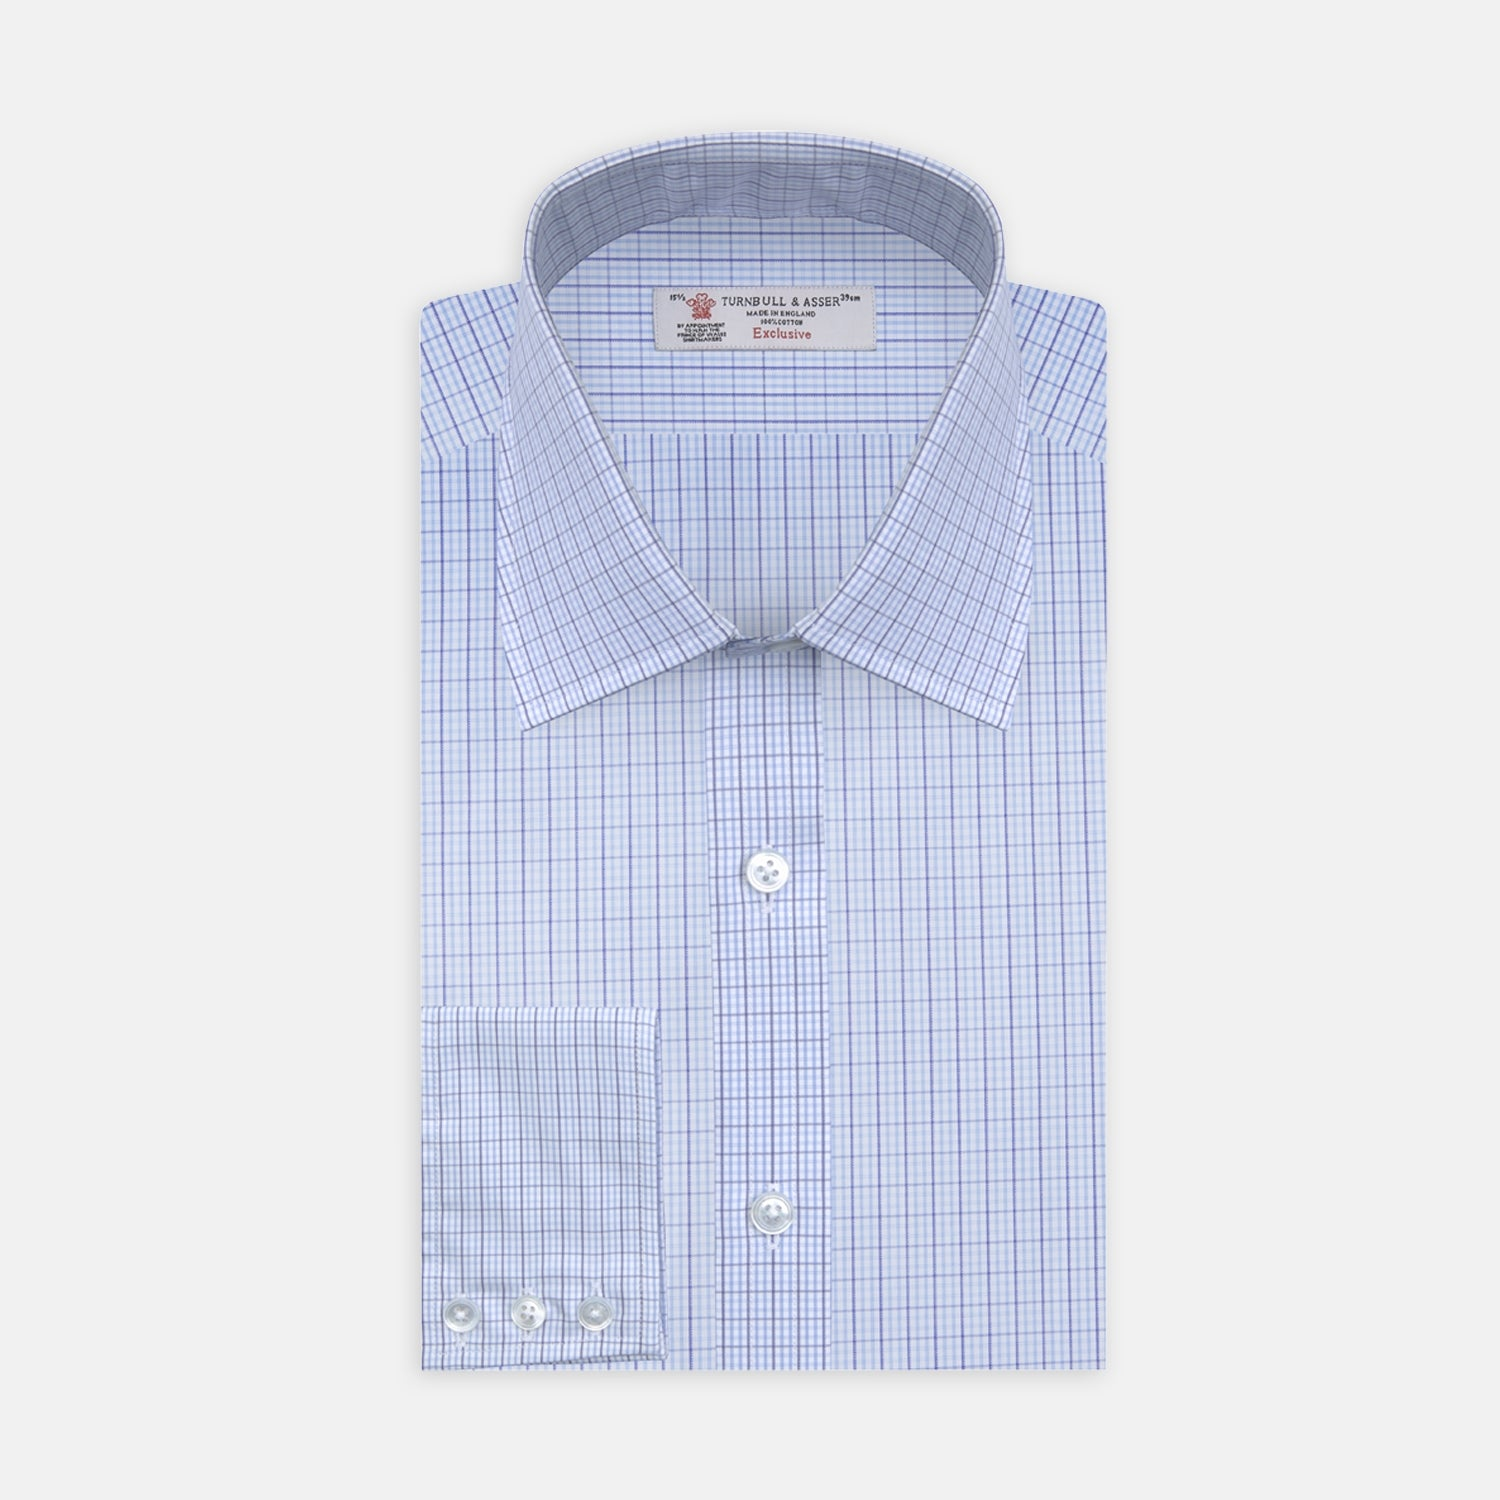 Blue and White Supraluxe Check Shirt with T&A Collar and 3-Button Cuffs